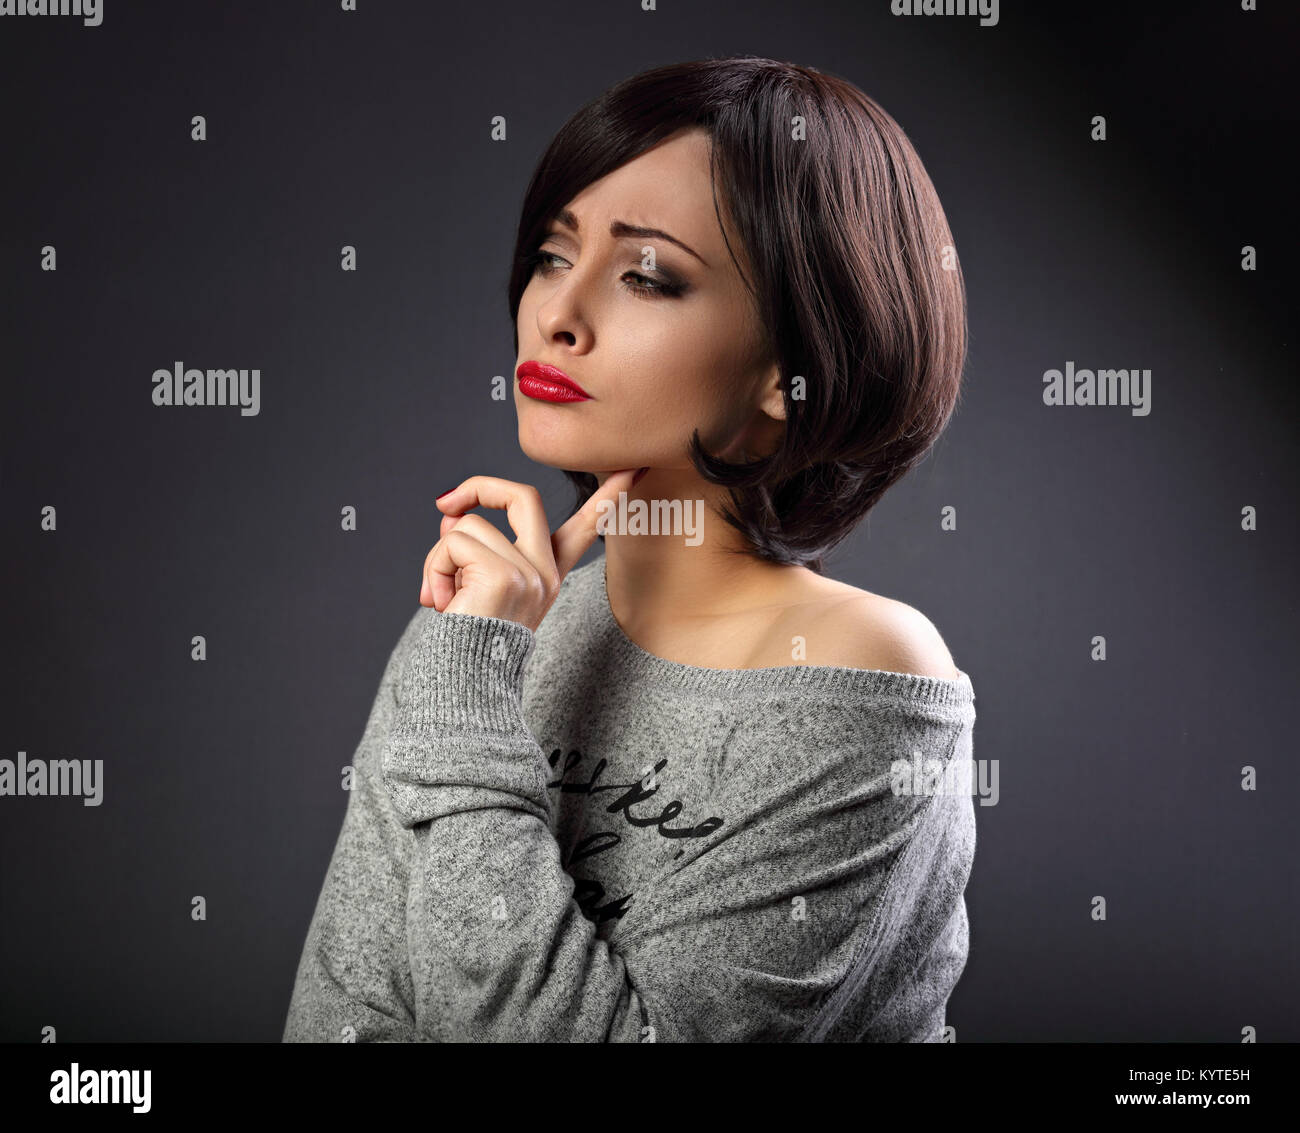 Skeptical unhappy grimacing thinking young woman with short black hair style looking up on empty copy space grey - Stock Image